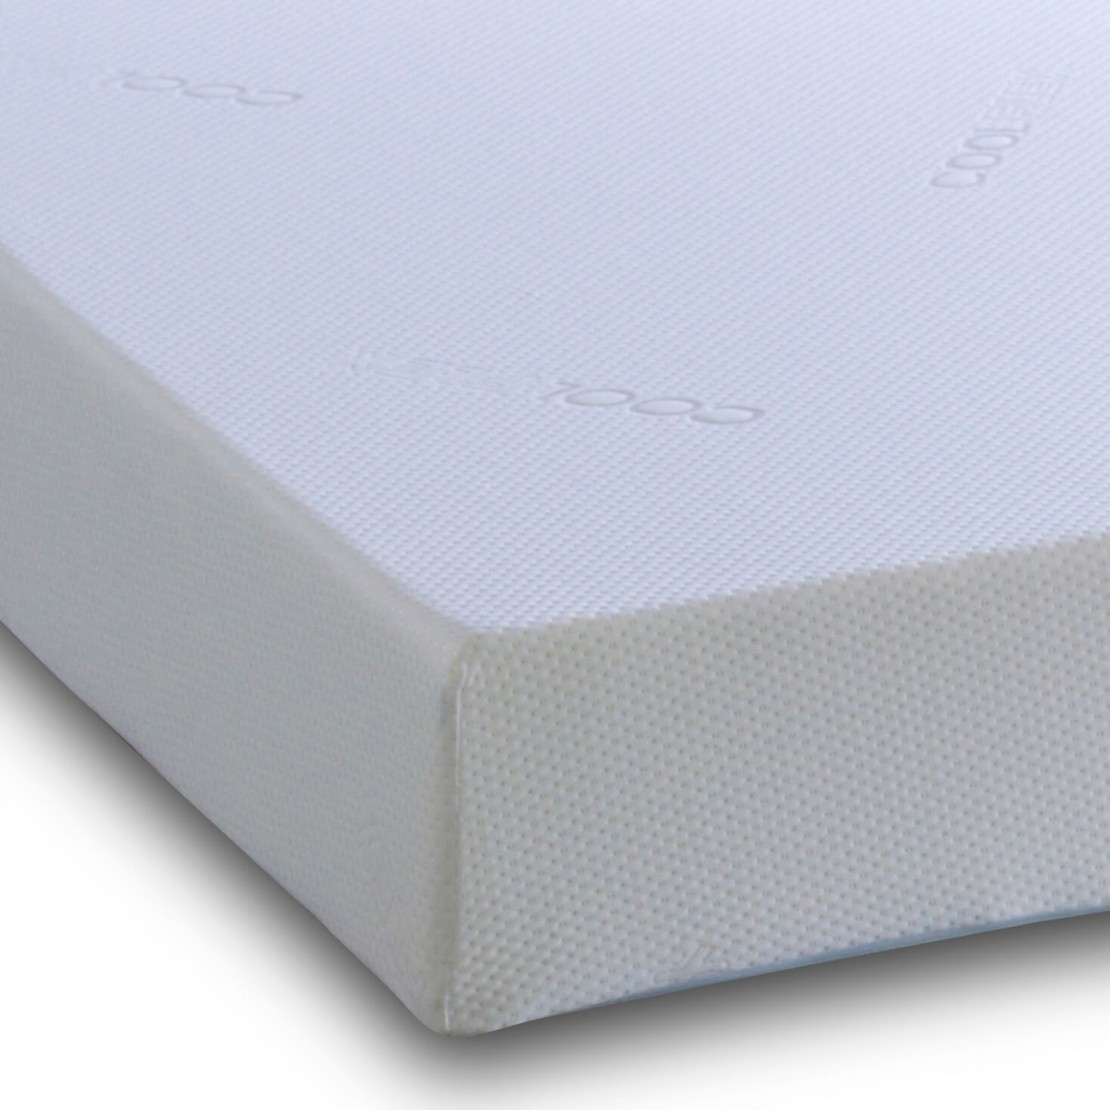 /_images/product-photos/visco-therapy-memory-250-memory-foam-regular-mattress-a.jpg